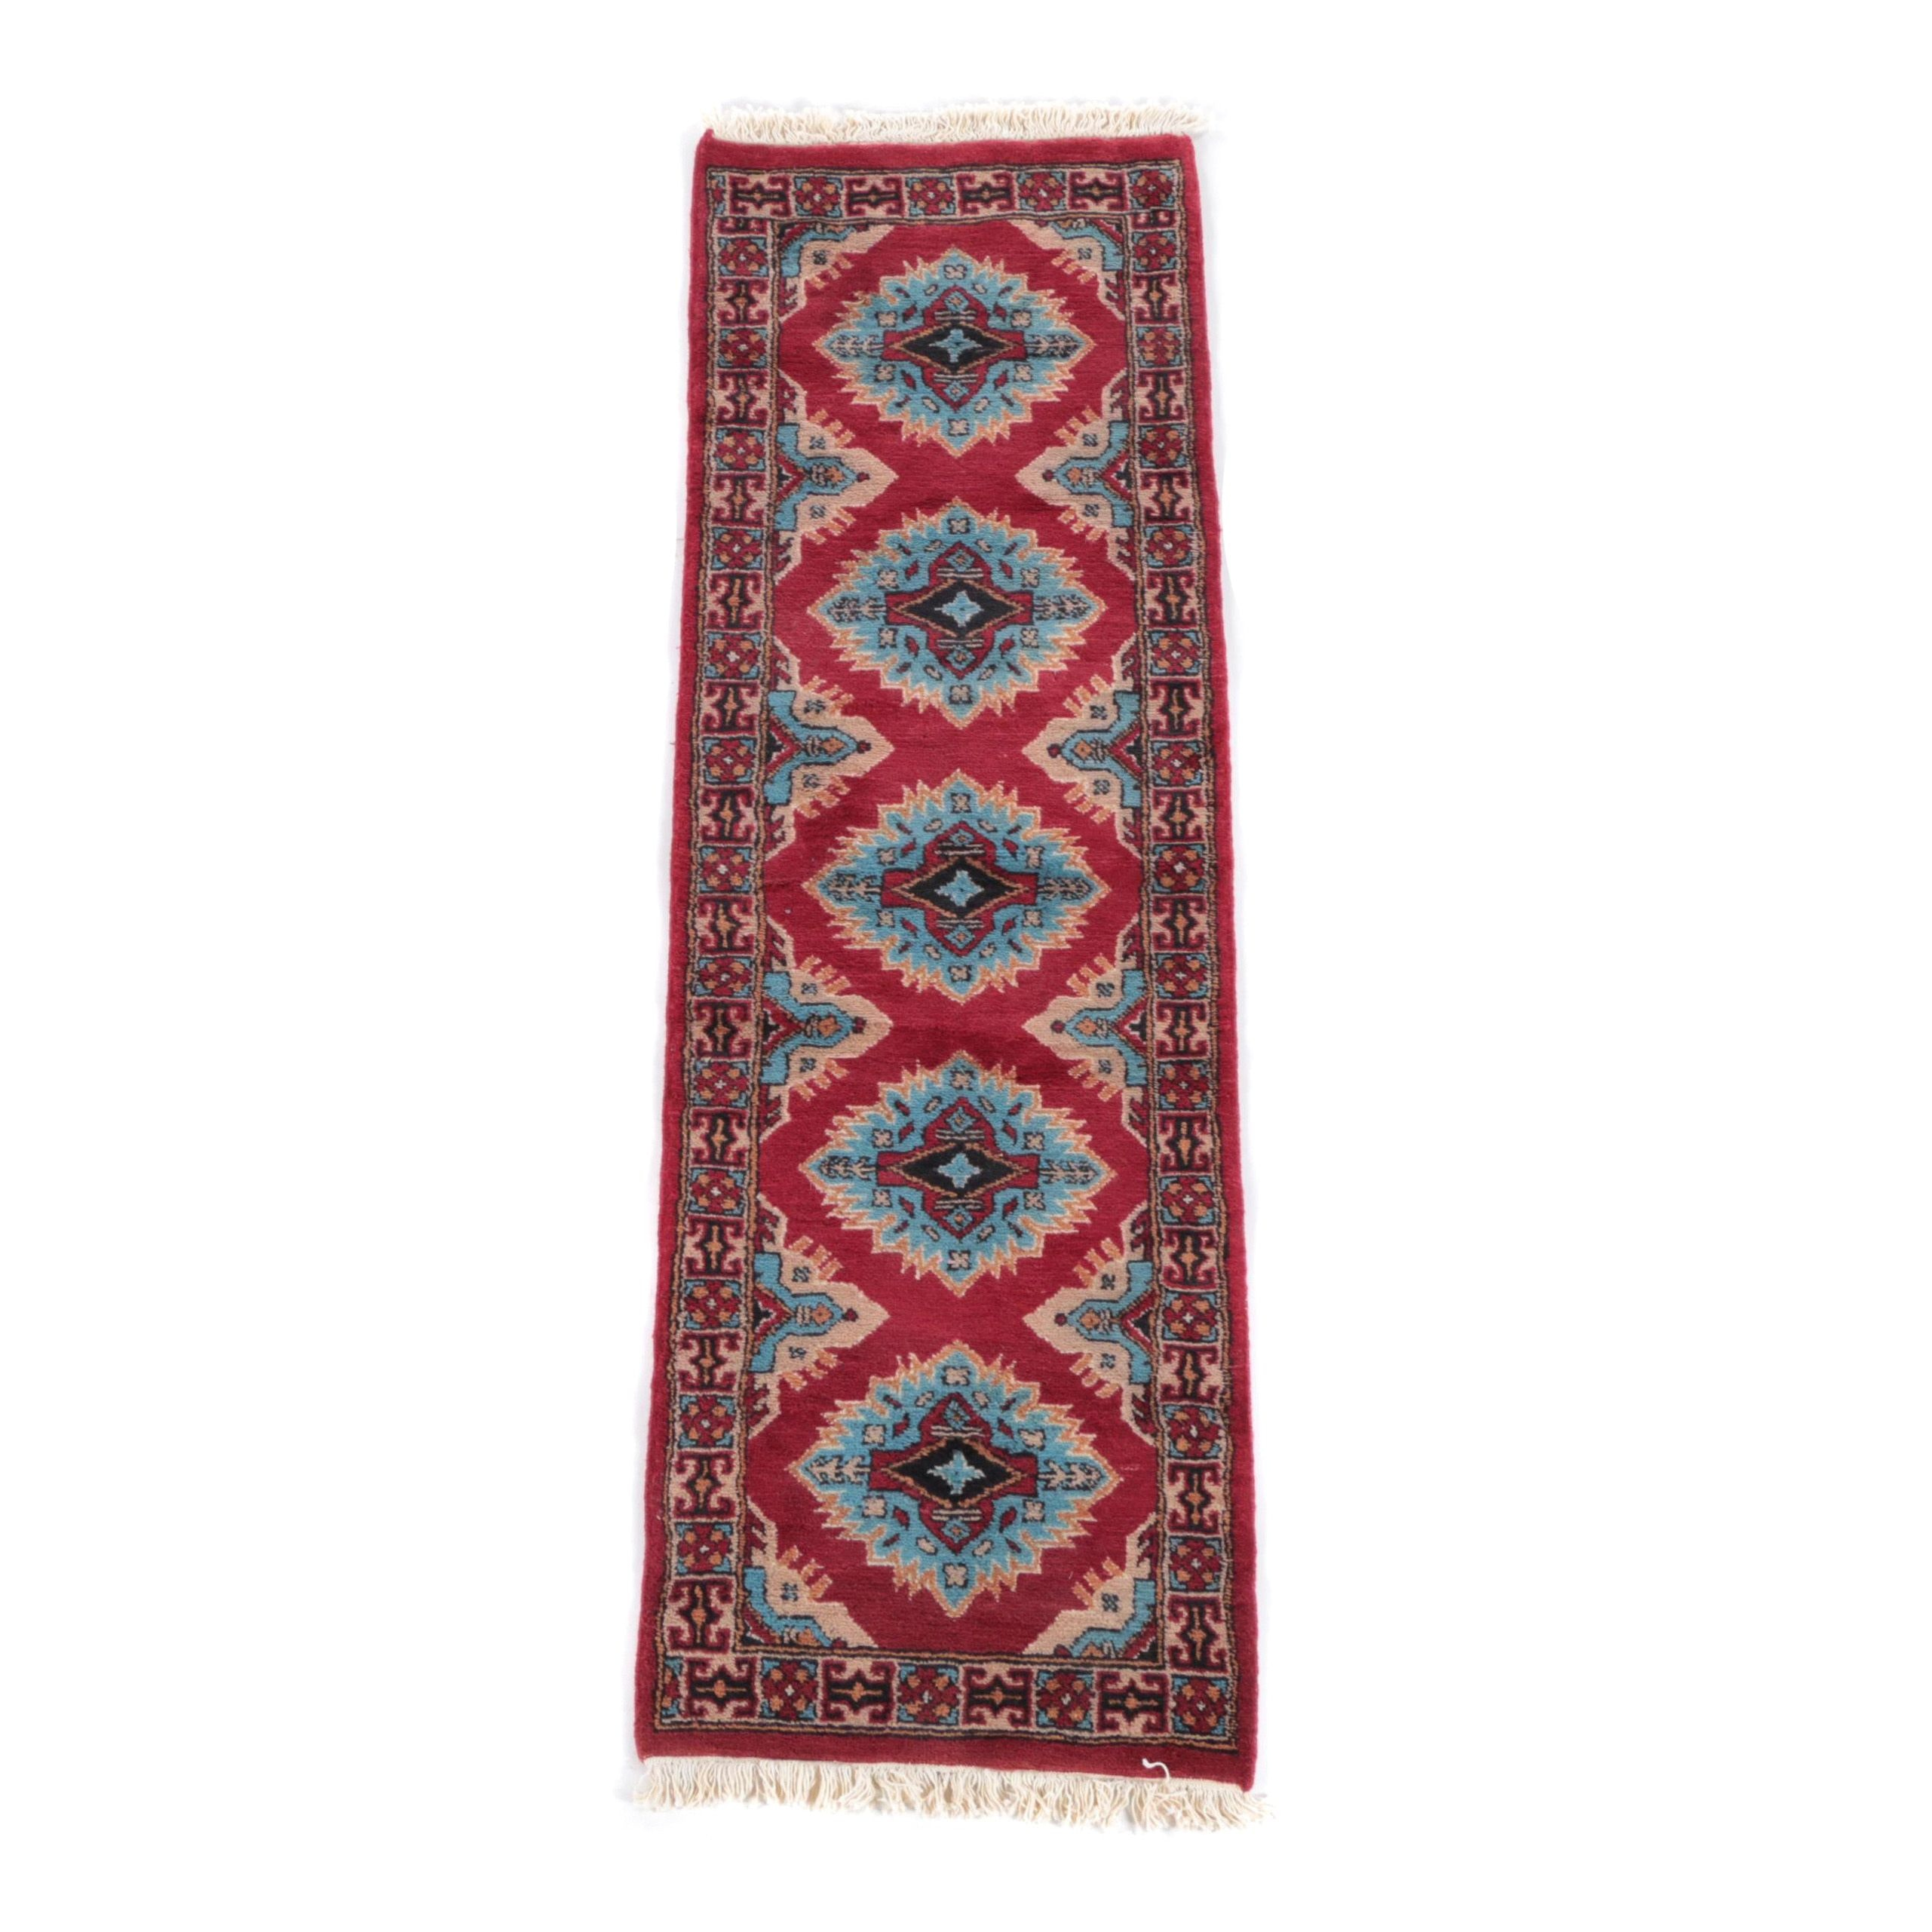 Hand-Knotted Pak-Kazak Carpet Runner